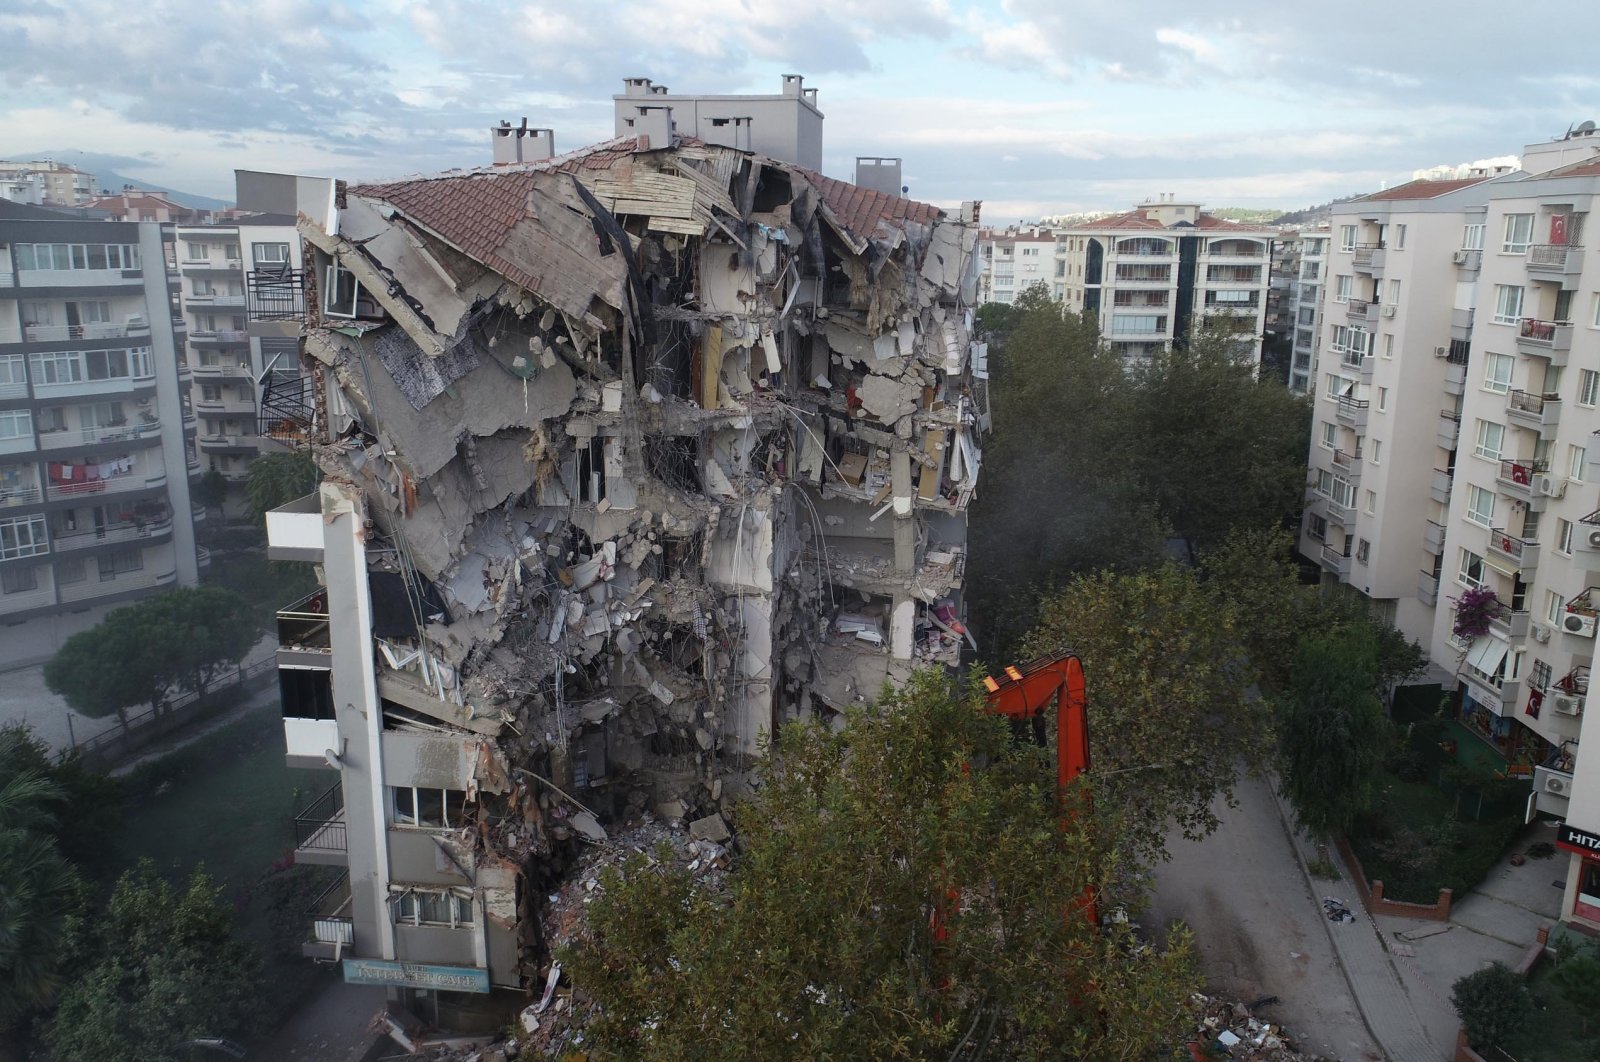 A building damaged in the earthquake is demolished, in Izmir, western Turkey, Nov. 7, 2020. (DHA Photo)